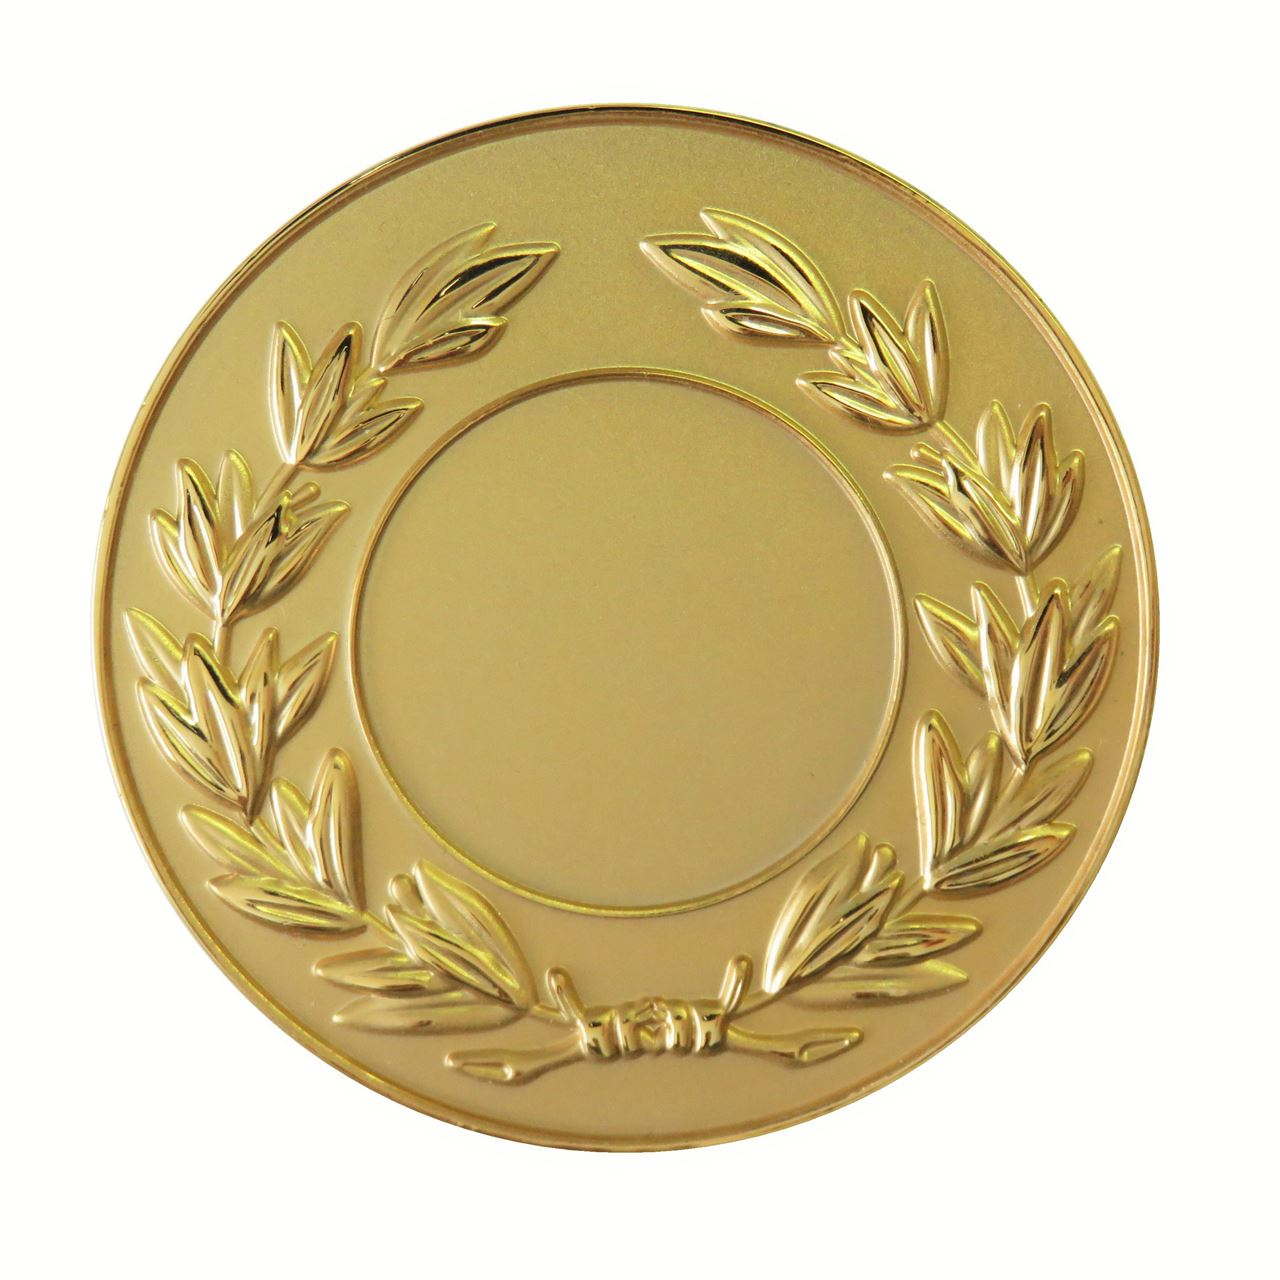 Gold Frosted Laurel Medal (size: 50mm) - LAUF